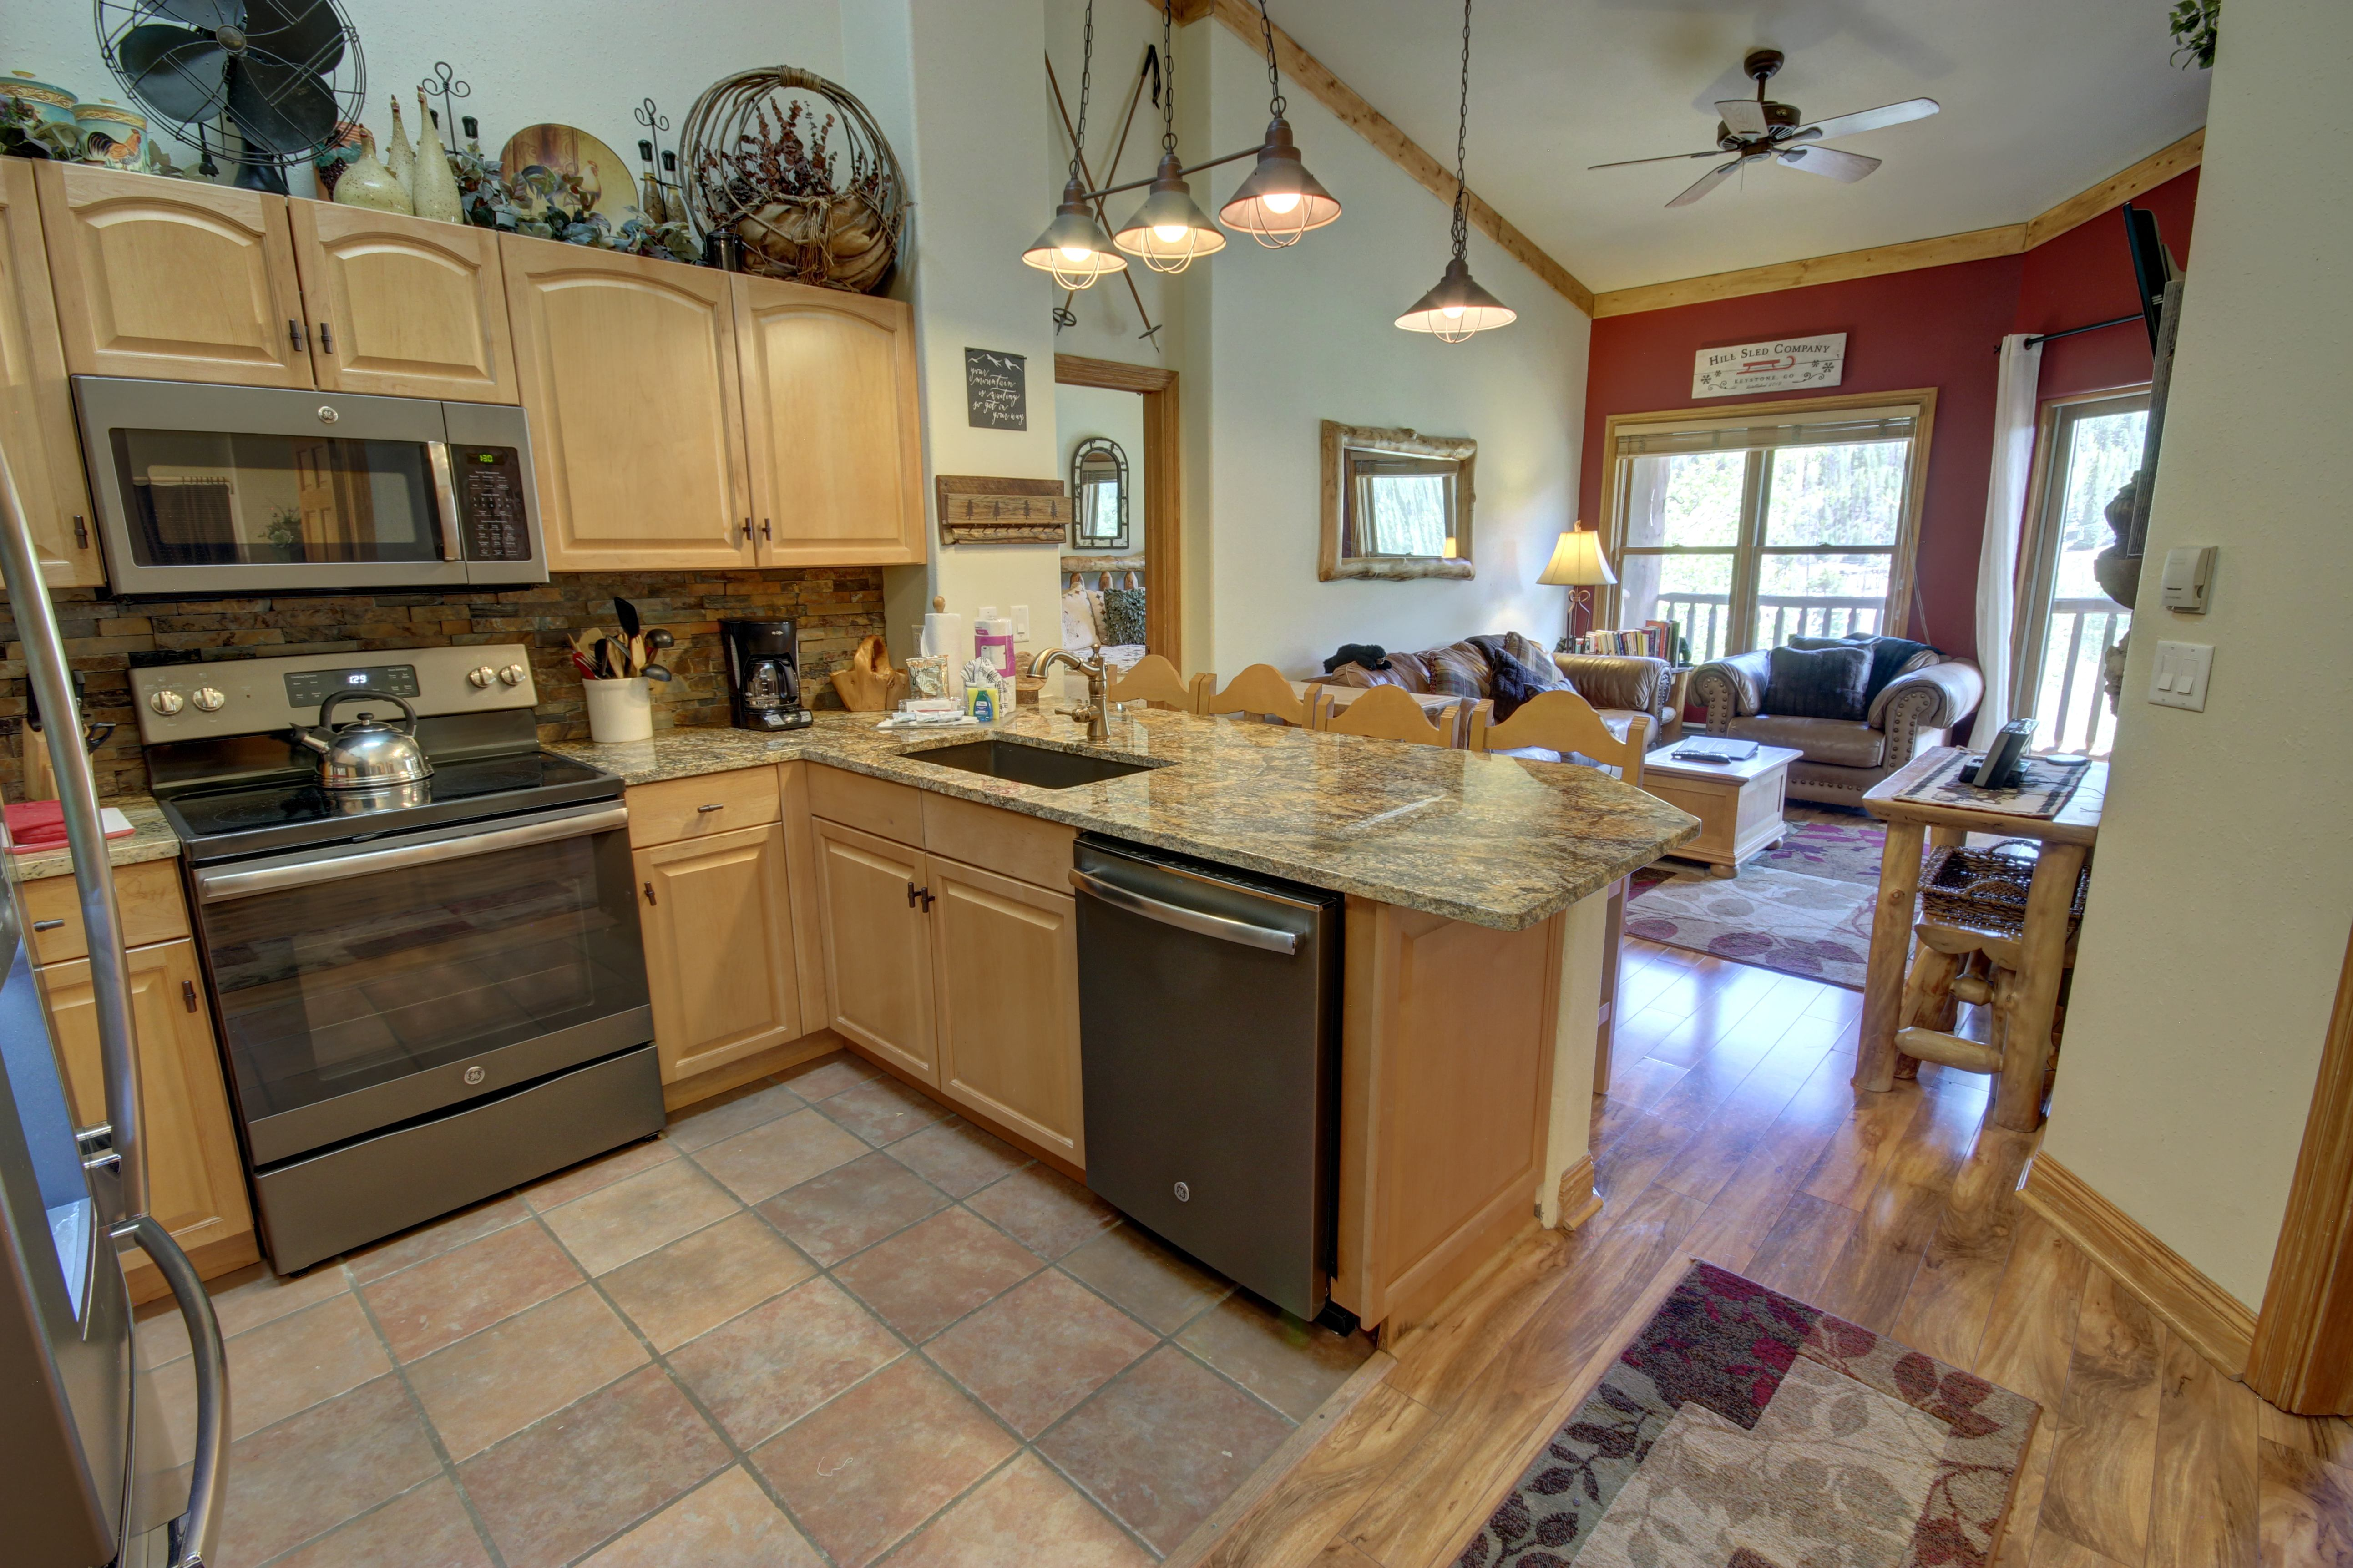 Kitchen with stainless appliances and lots of counter space